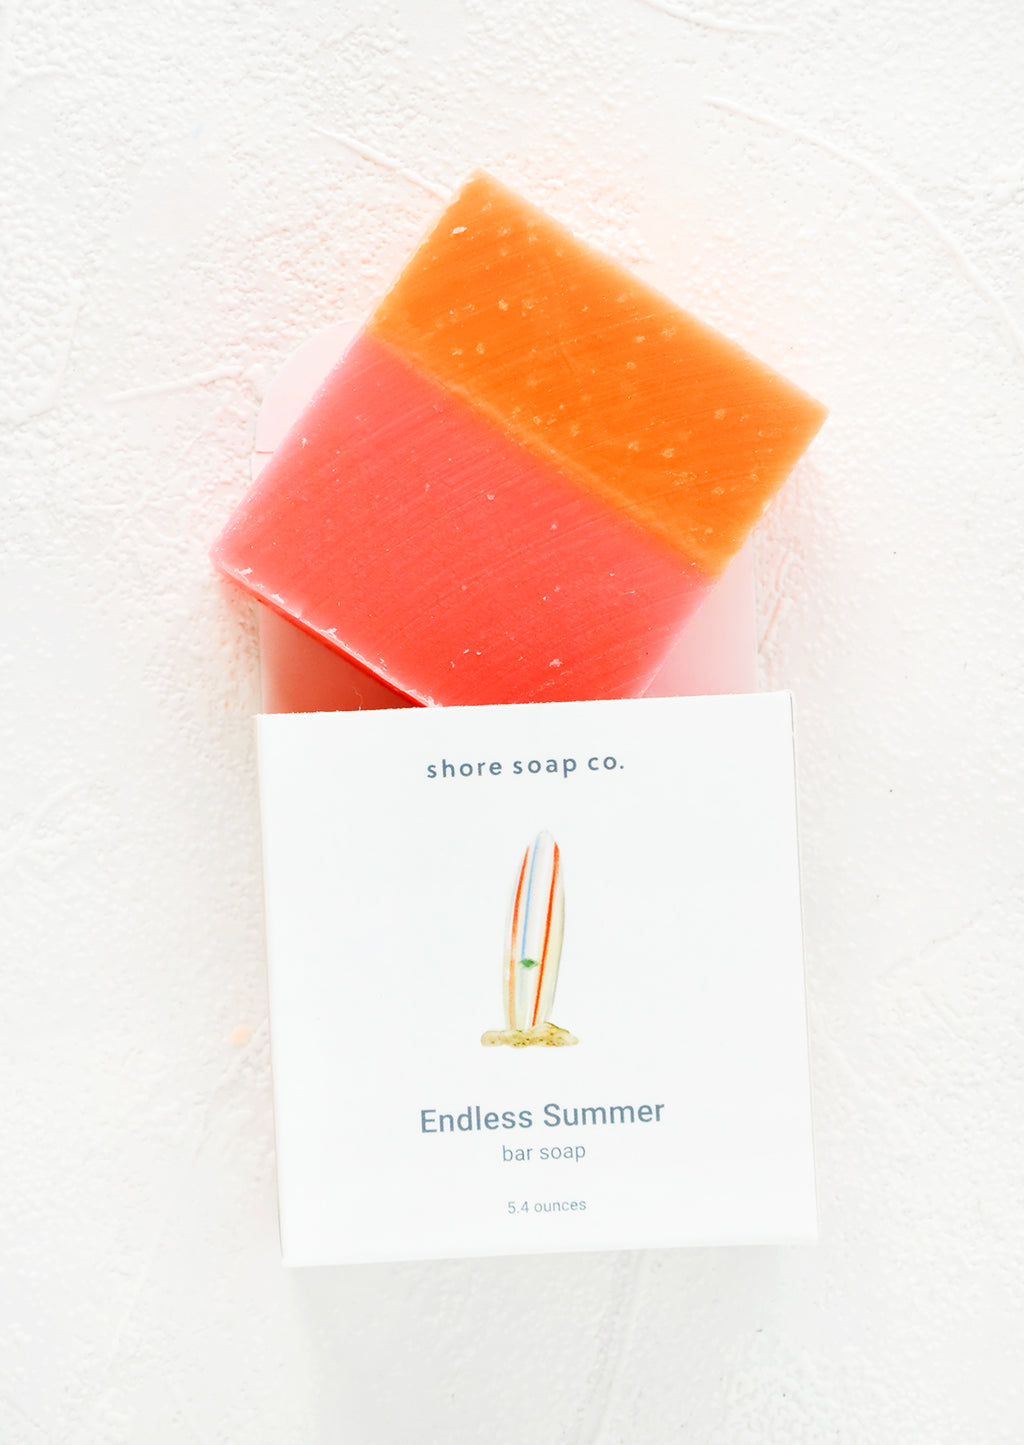 Endless Summer: Square bar soap in pink & orange emerging from nautical themed packaging